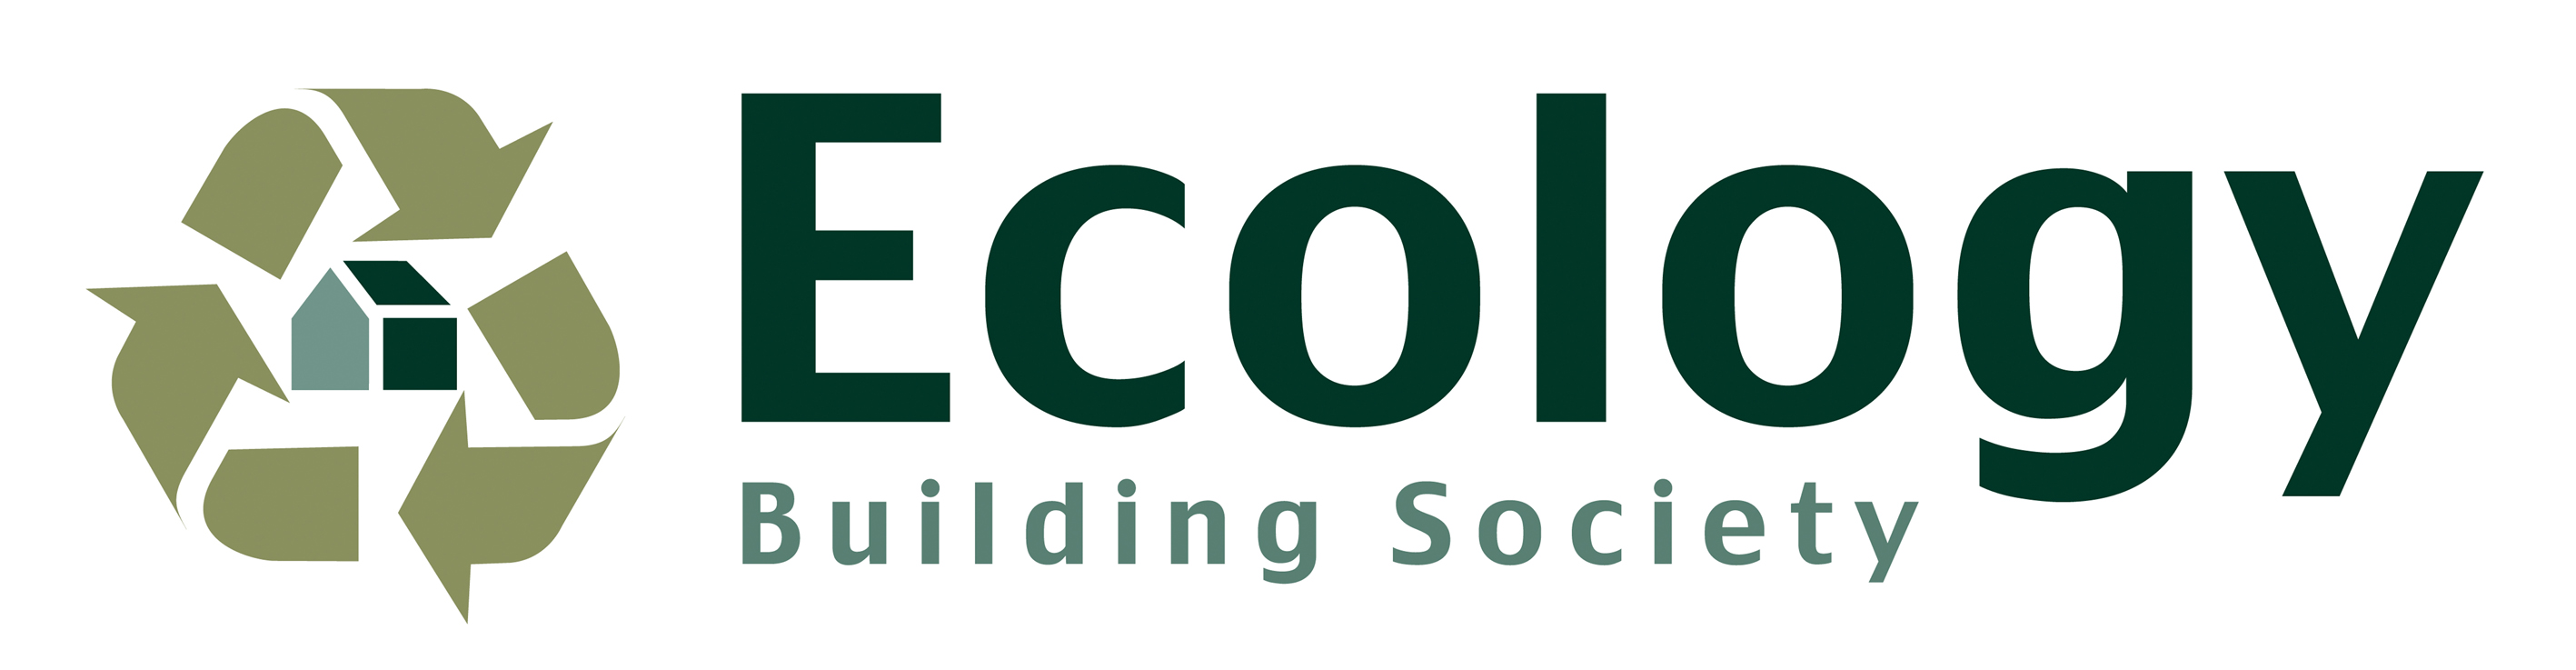 Ecology Building Society